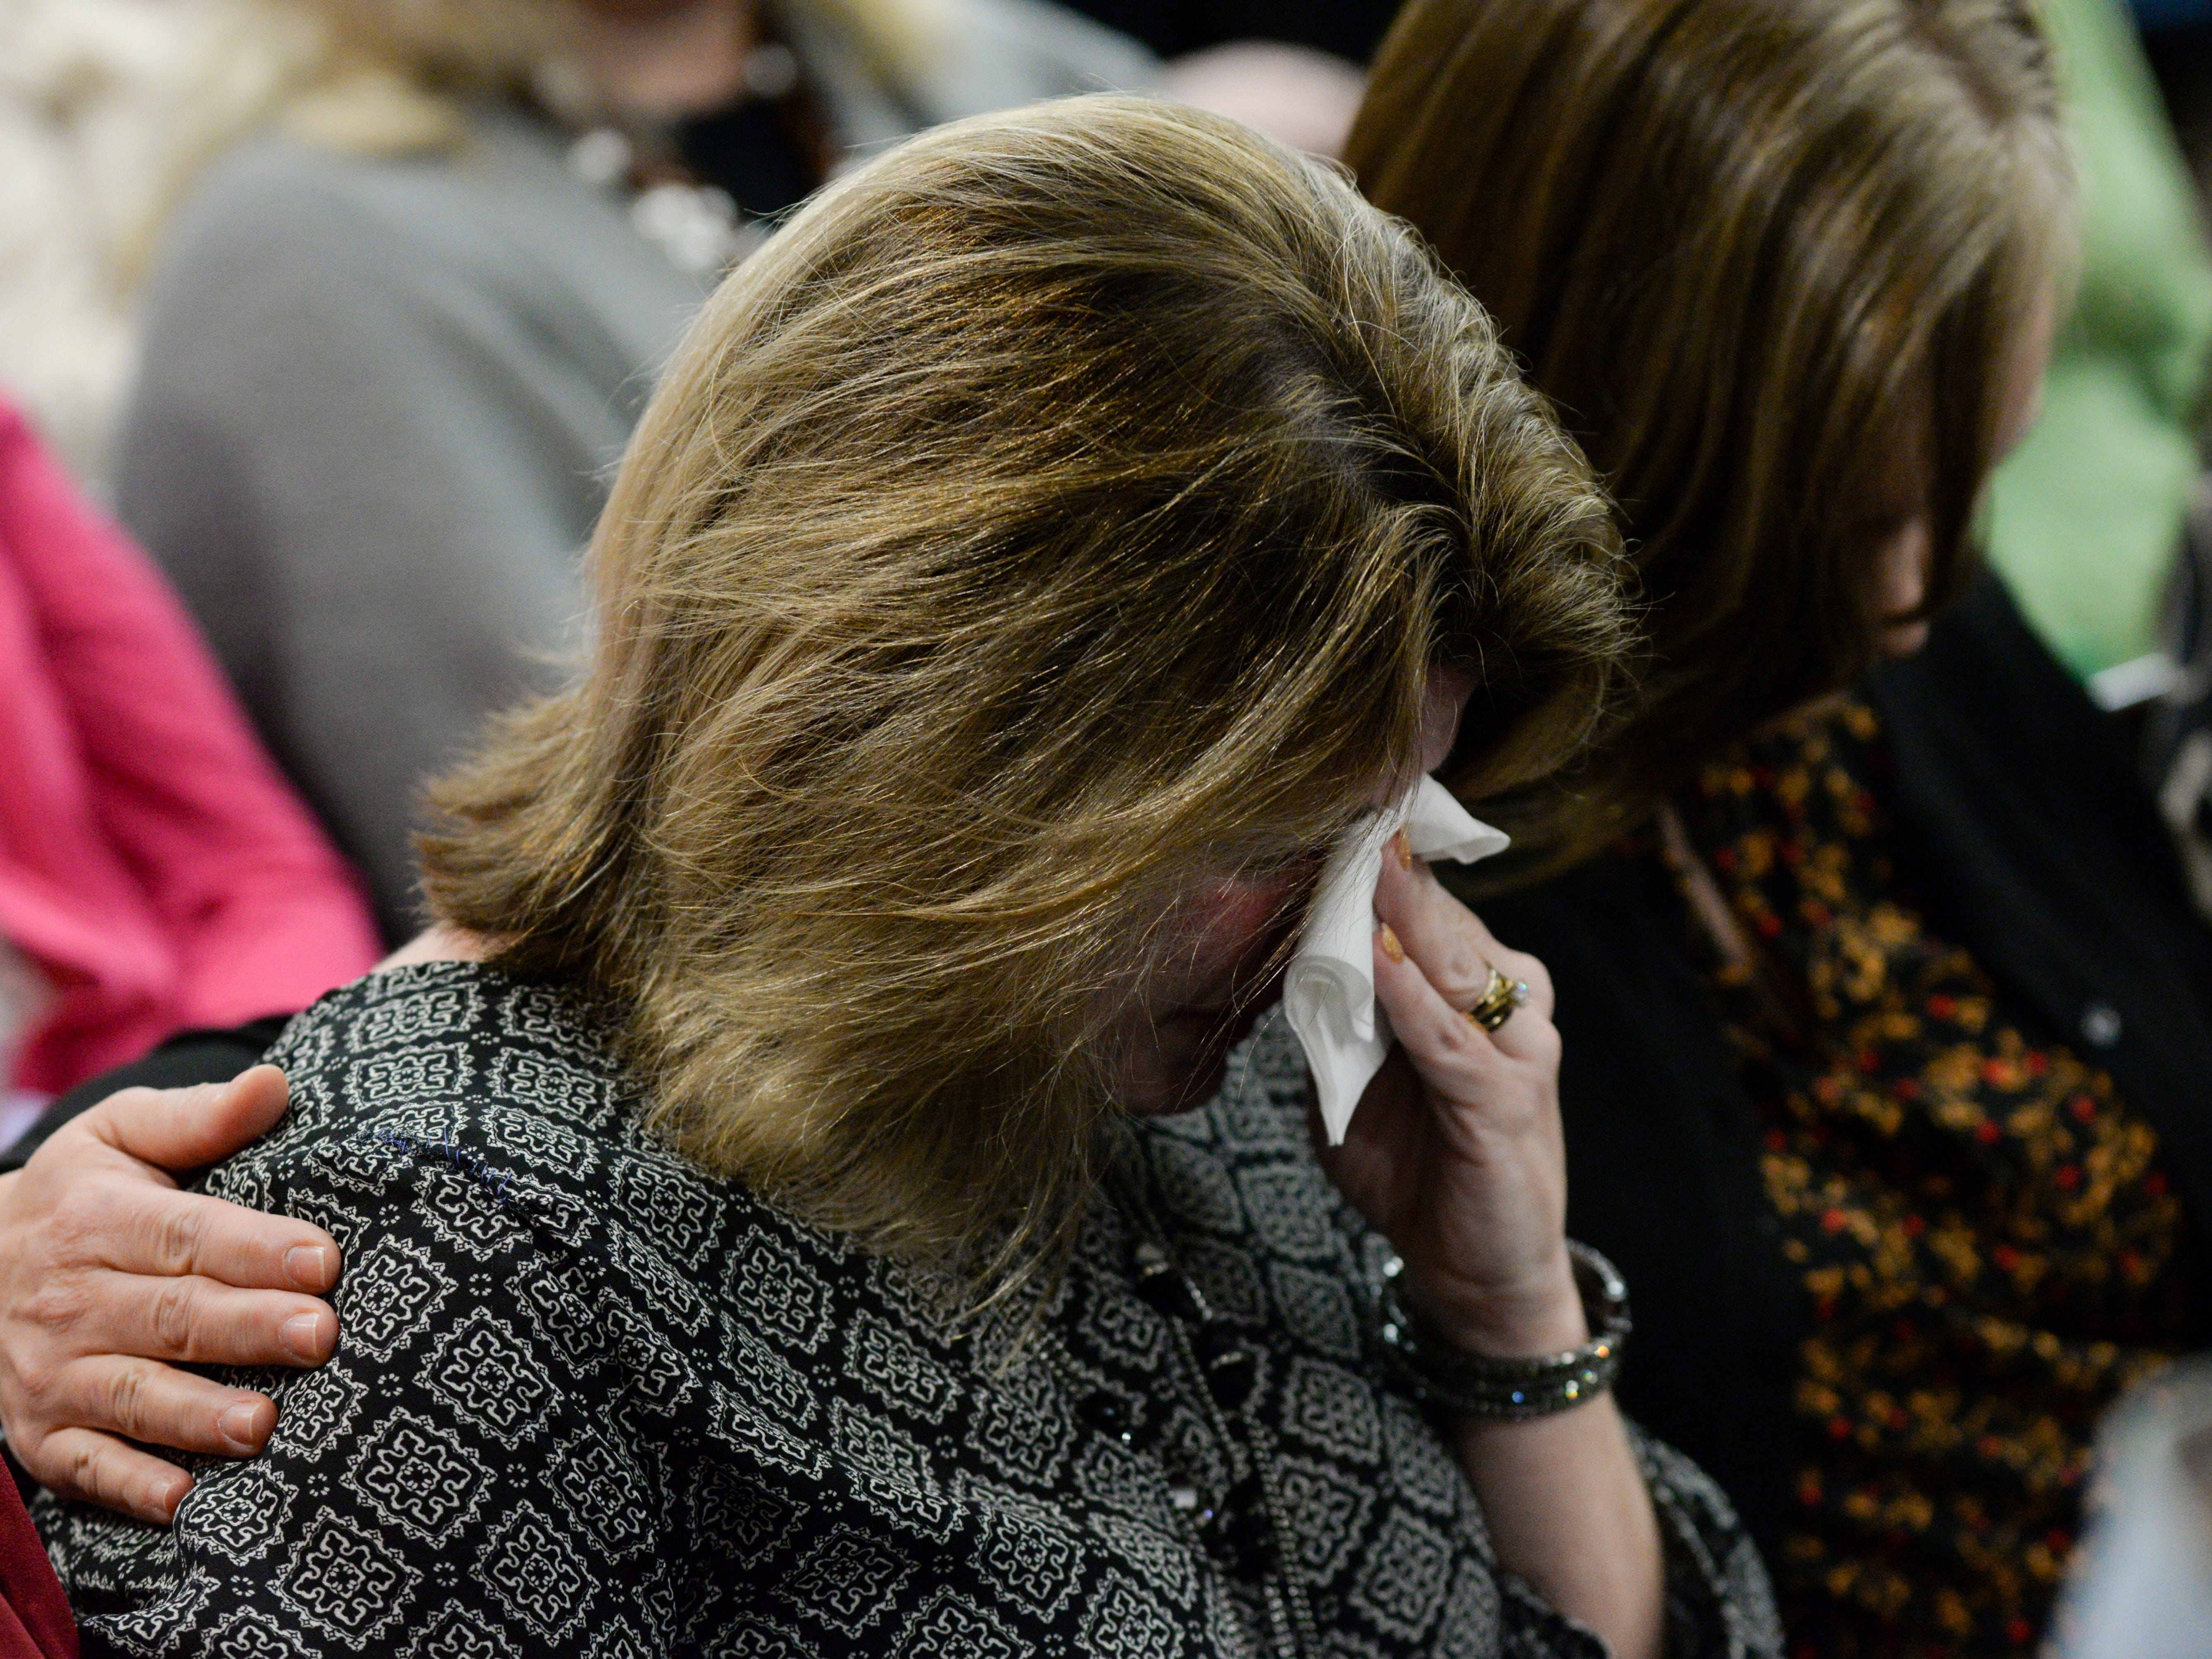 Kathy Thomas comforts Lindsay Lockhart as she cries as Assistant State Attorney Jon Fuchs finishes his rebuttal in closing arguments during the trial of Denise Williams for the murder of her husband Mike Williams at the Leon County Courthouse Friday, Dec. 14, 2018.